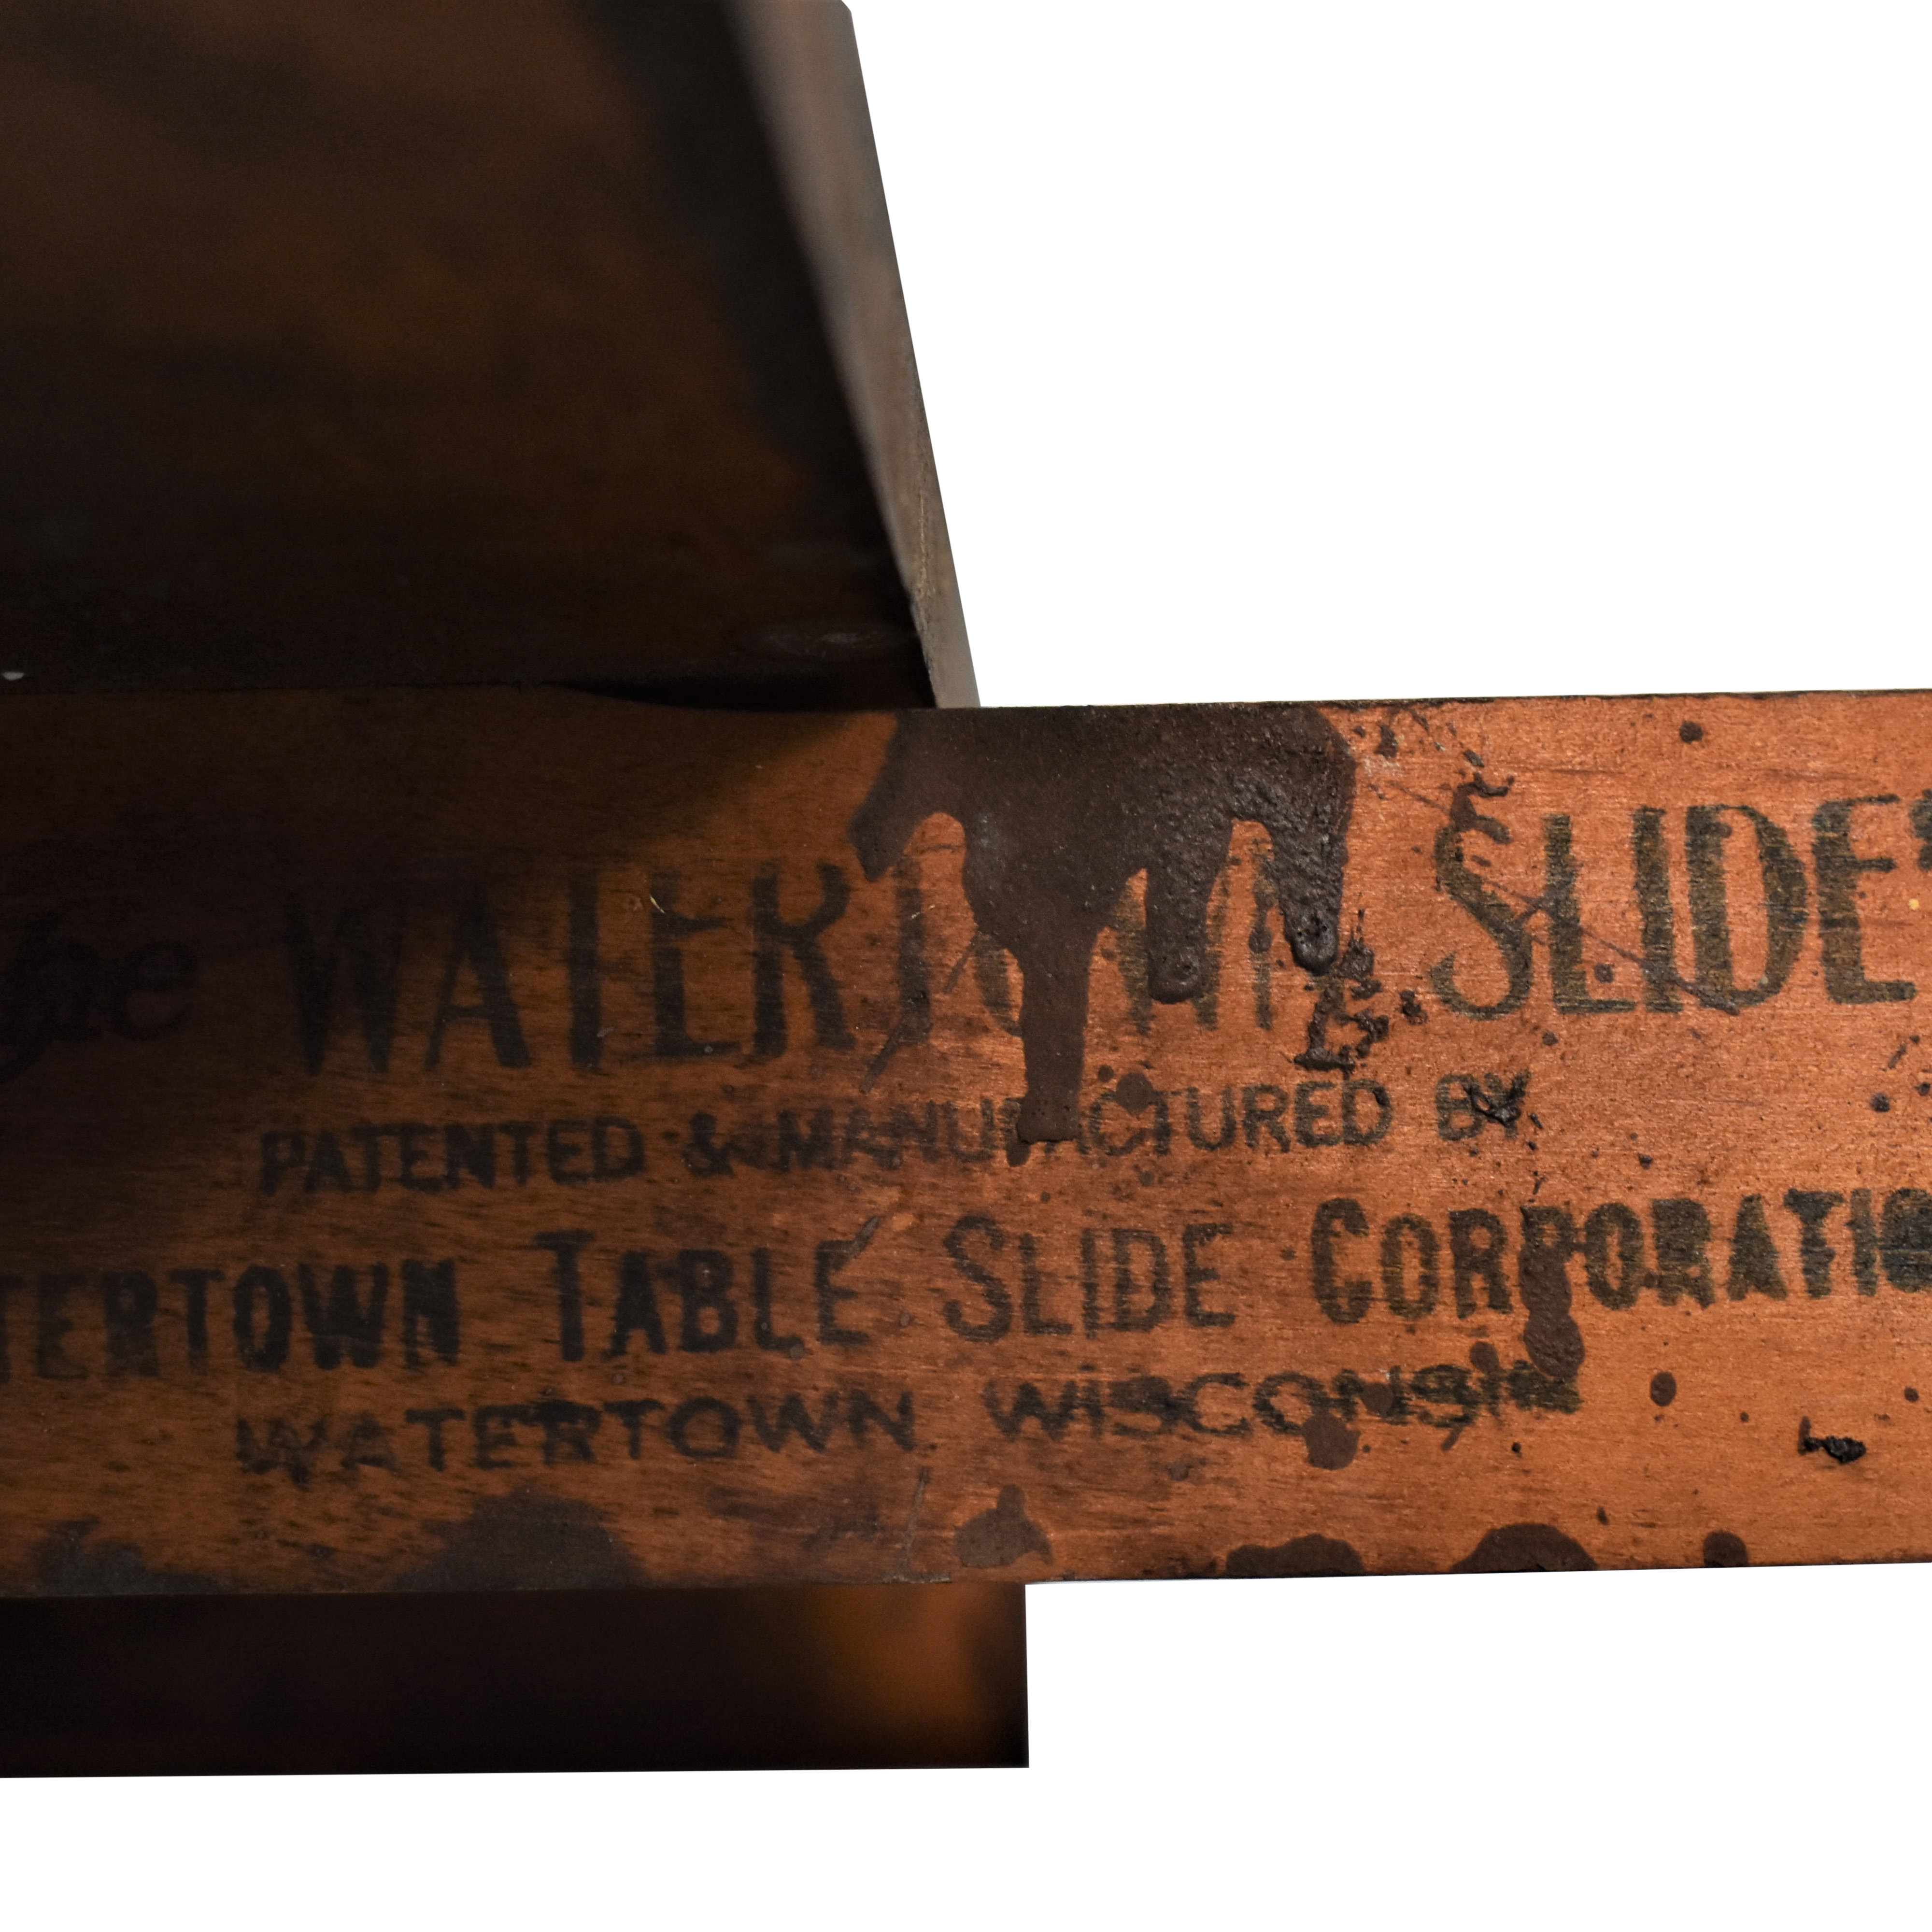 Watertown Table Company Slide Table second hand